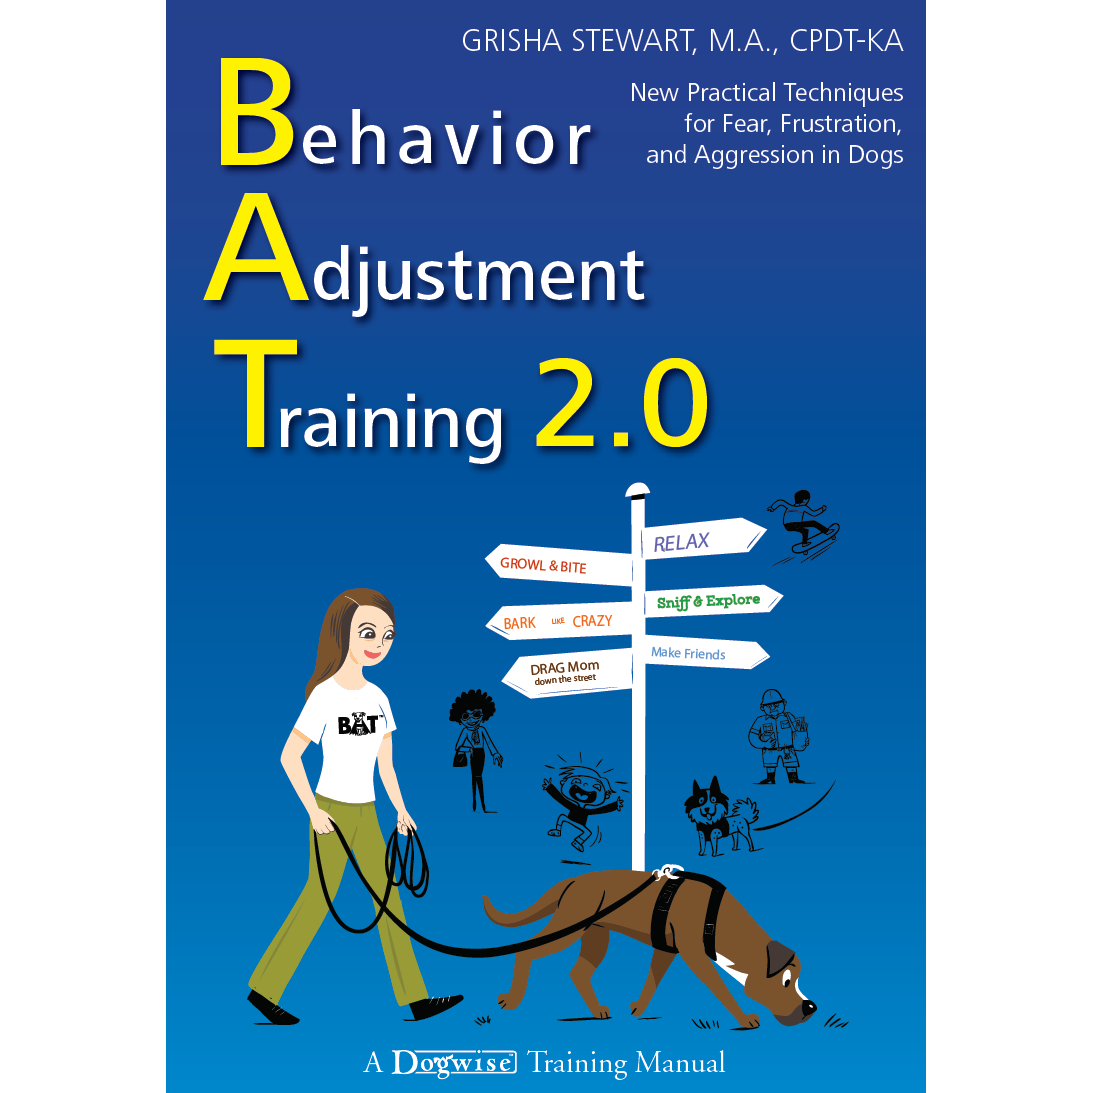 BAT 2.0 Book for Dog Aggression, Frustration, & Fear (Signed Paperback)